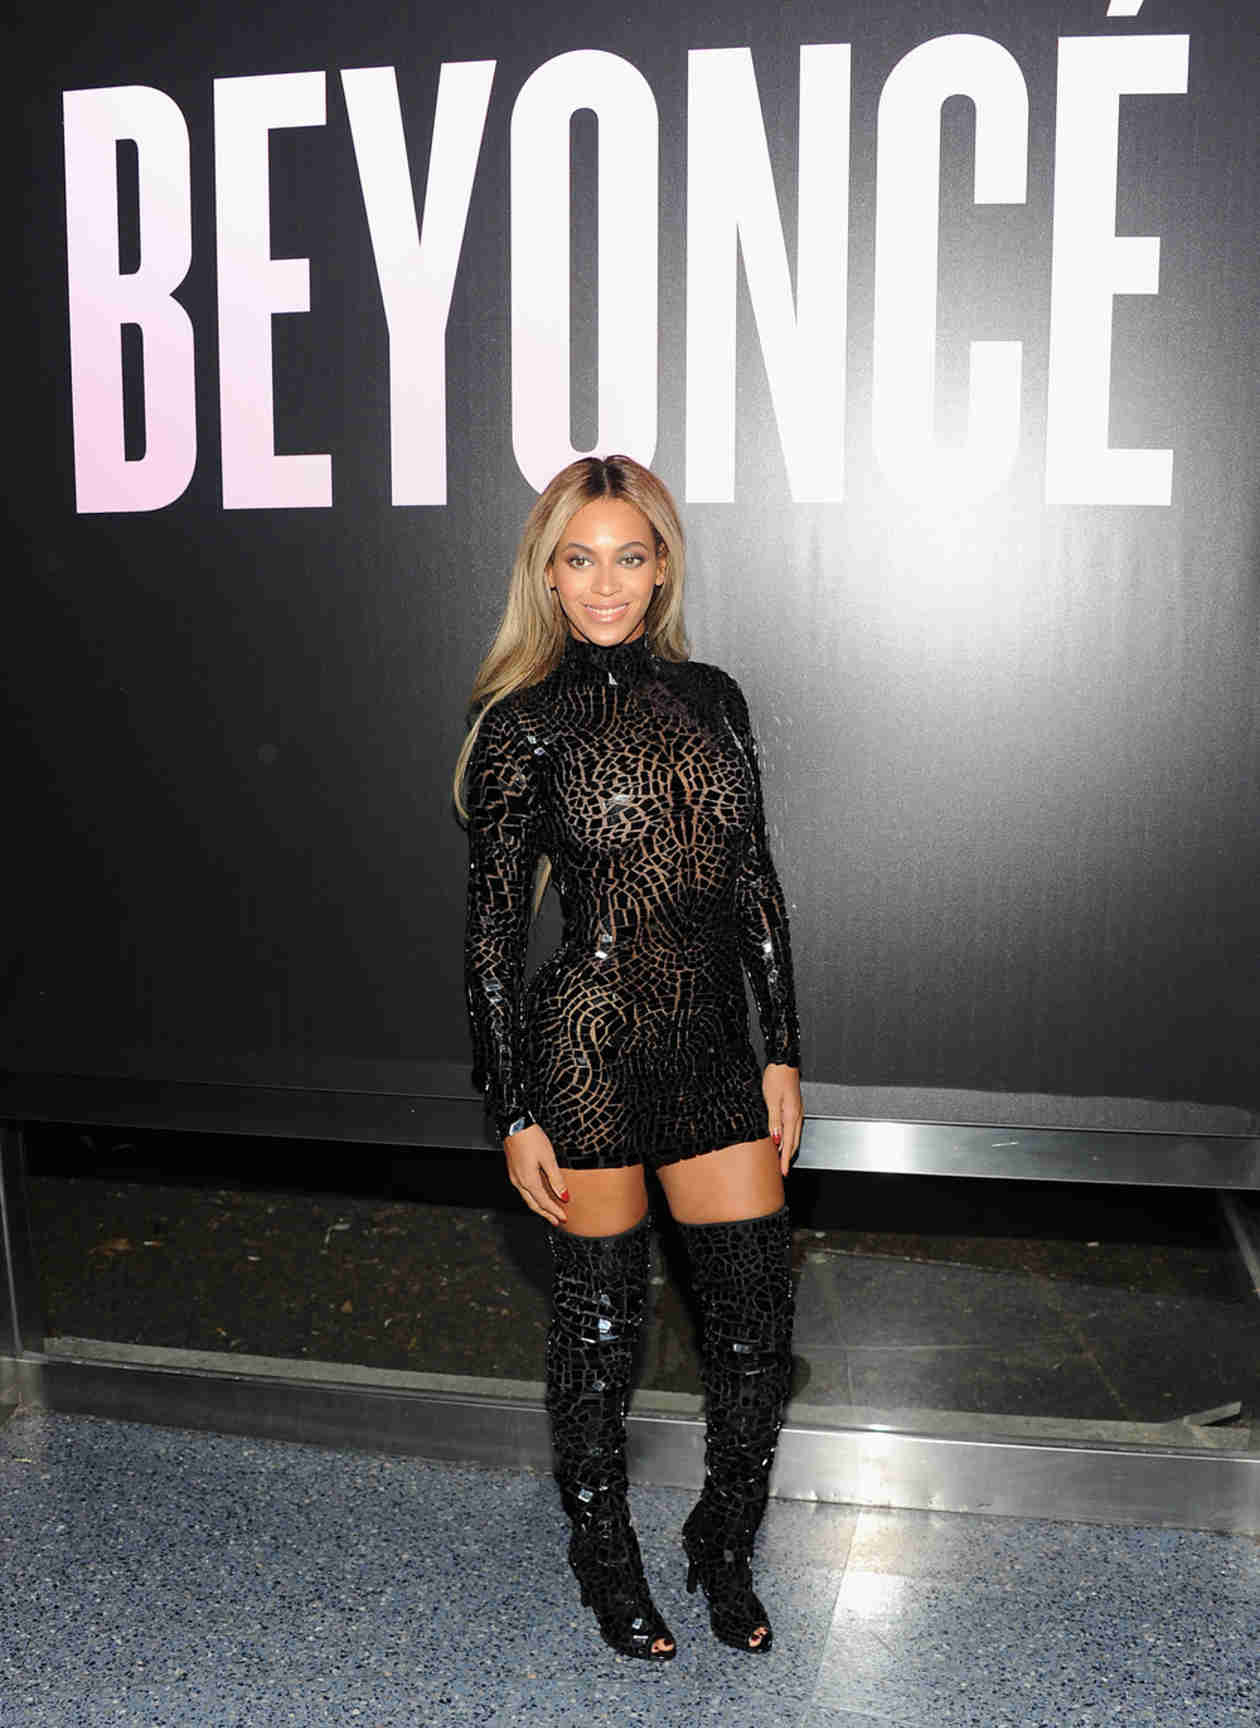 Beyoncé Leads Nominations For MTV Video Music Awards Because She Runs the World (VIDEO)